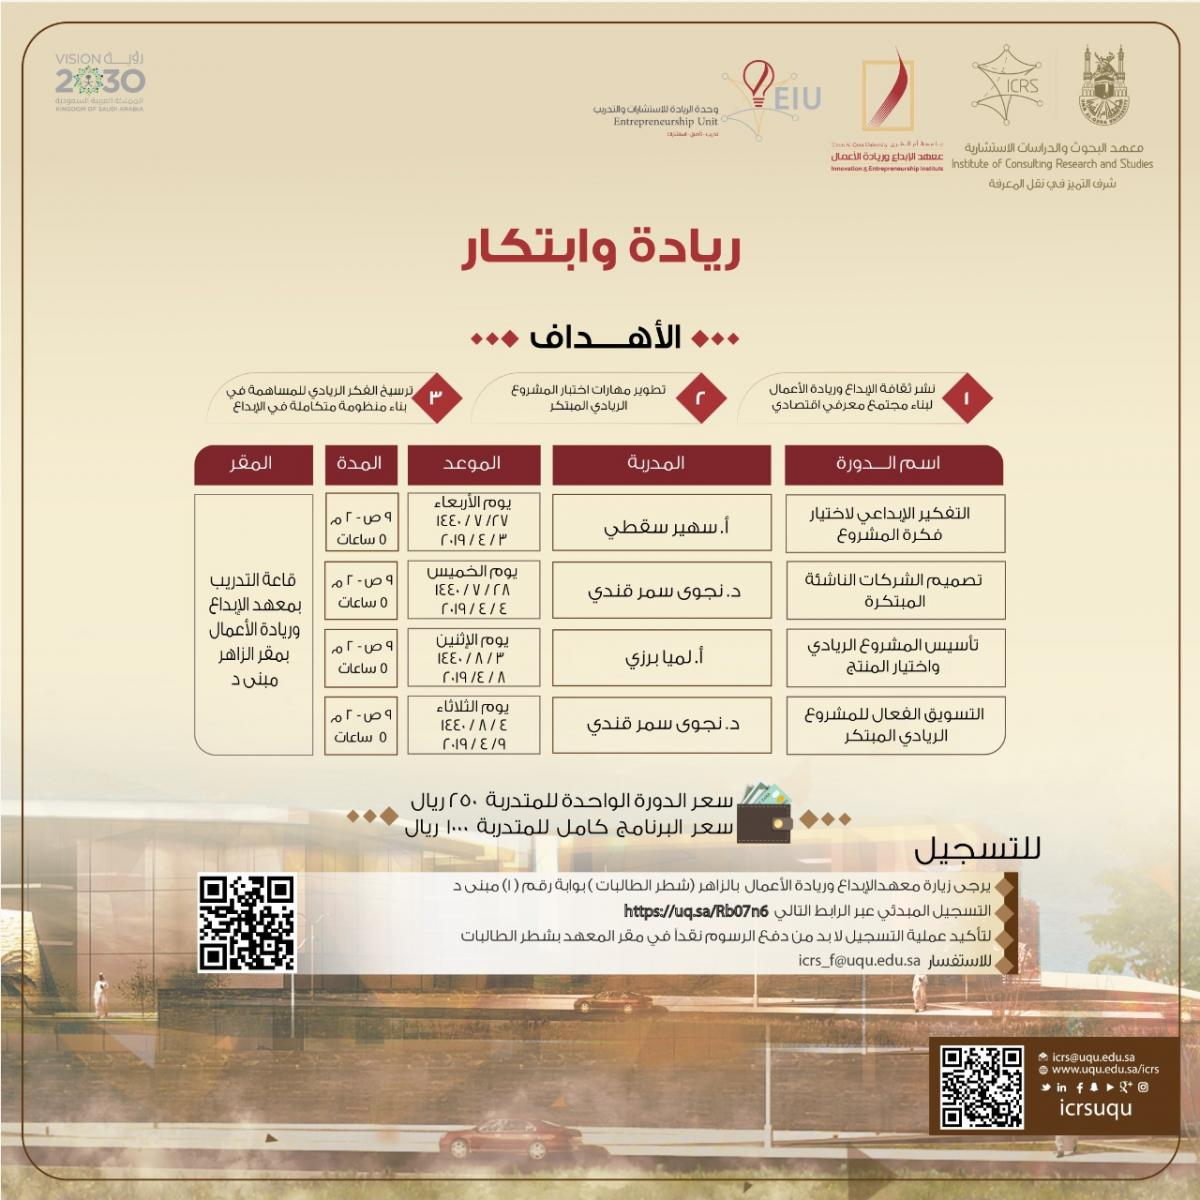 'Entrepreneurship and Creativity' Program